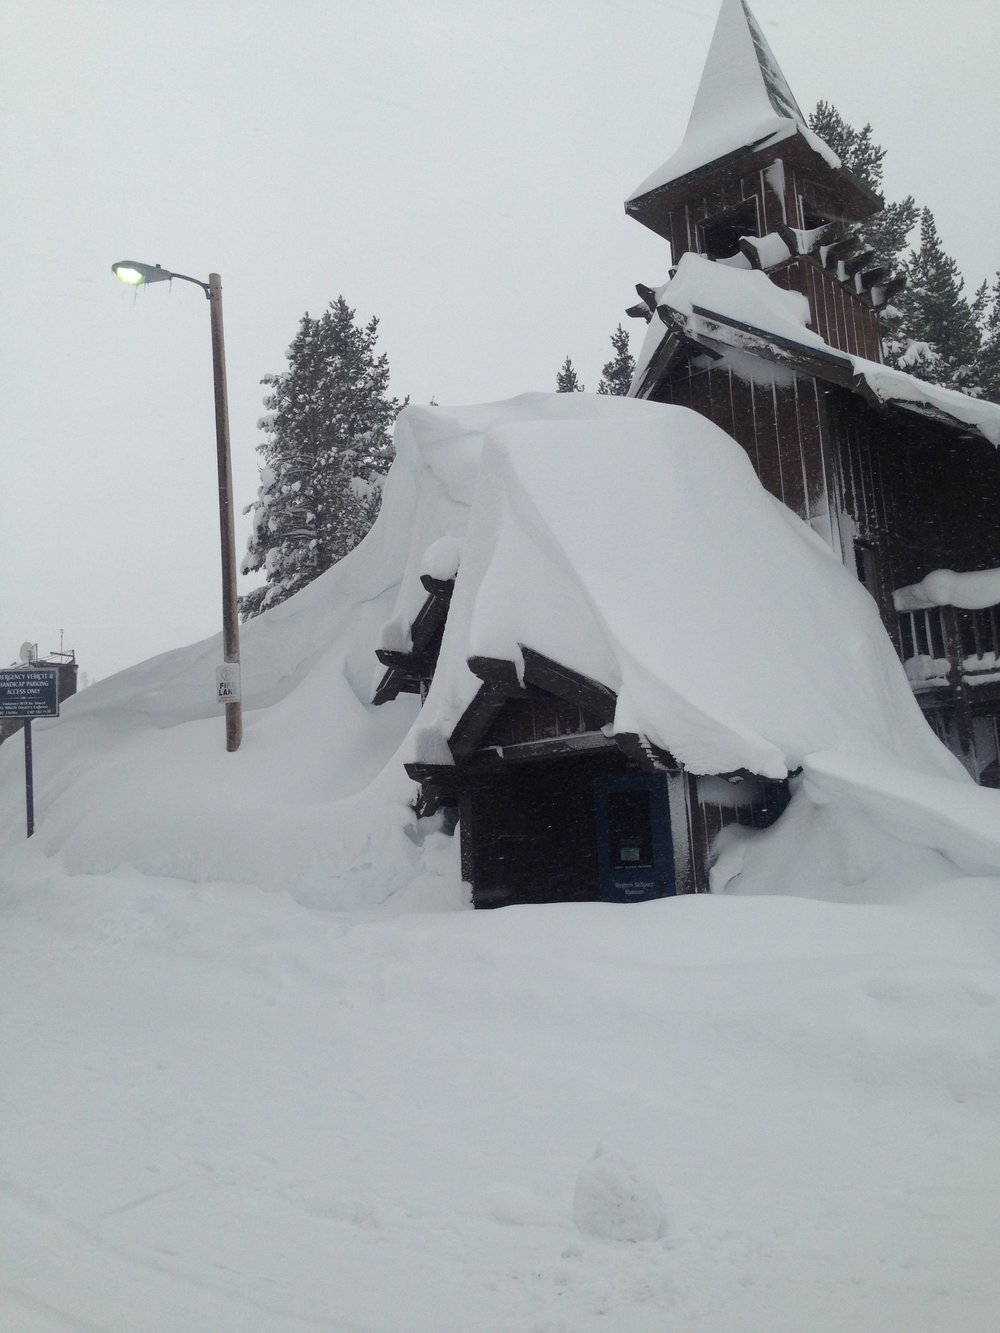 The Ski Museum, buried on Donner Summit, January 2017.